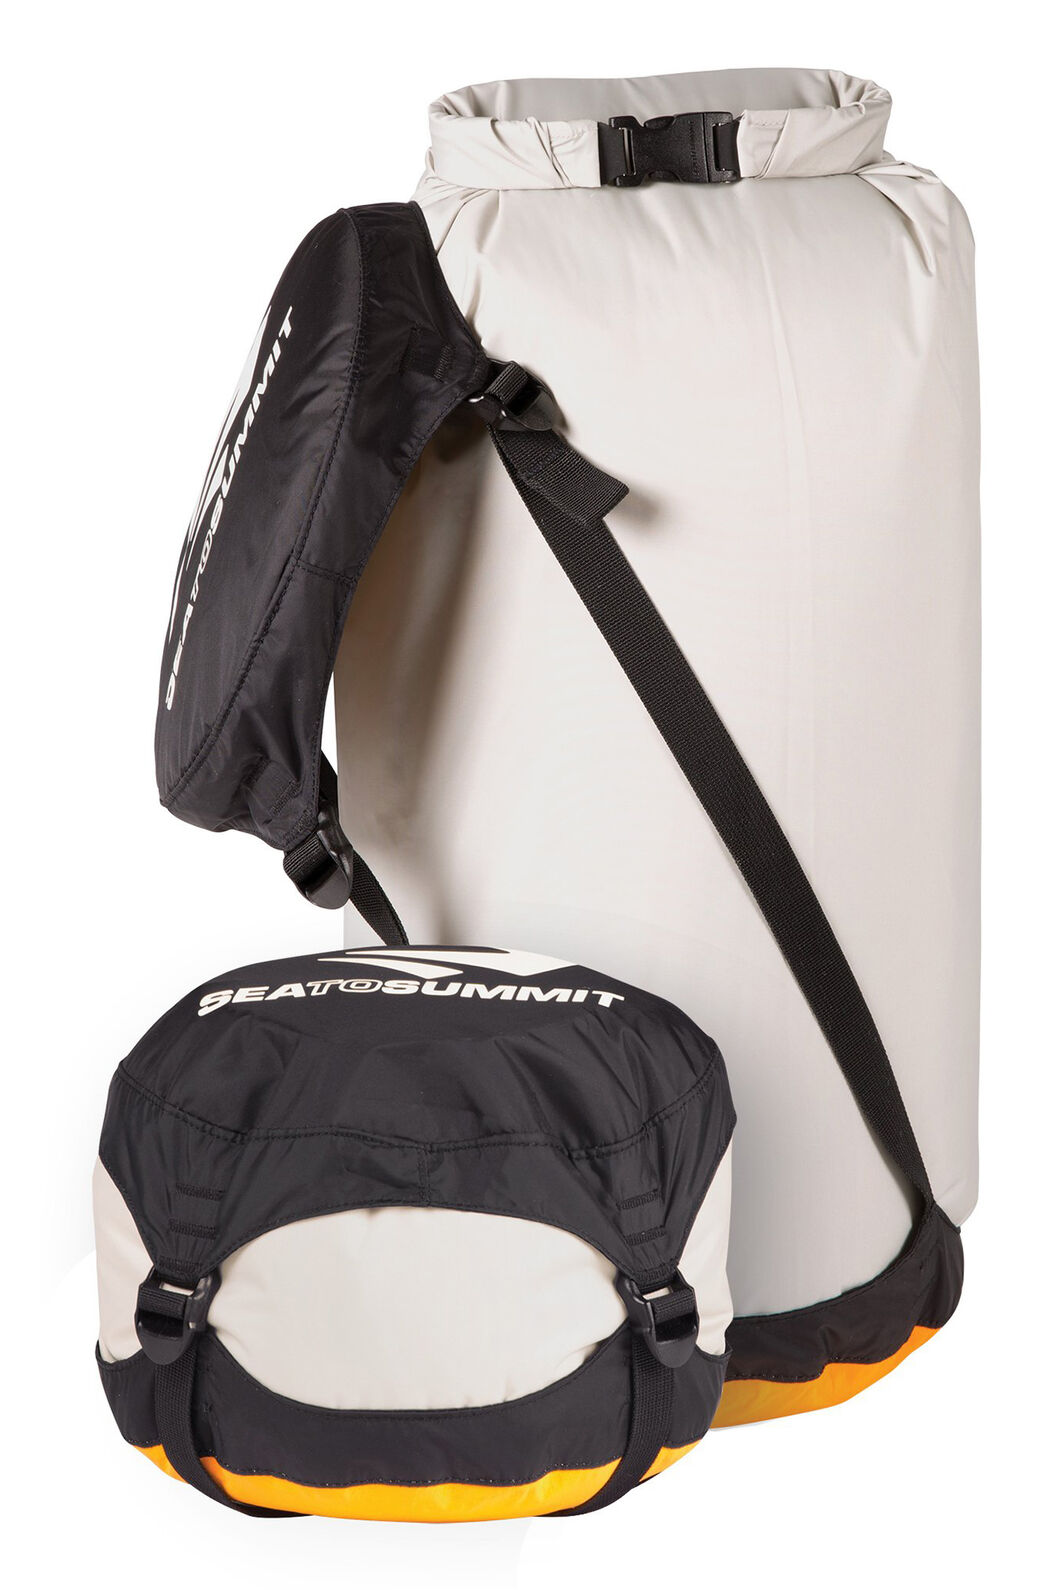 Sea to Summit Extra Large Compression Sack Dry Bag, None, hi-res